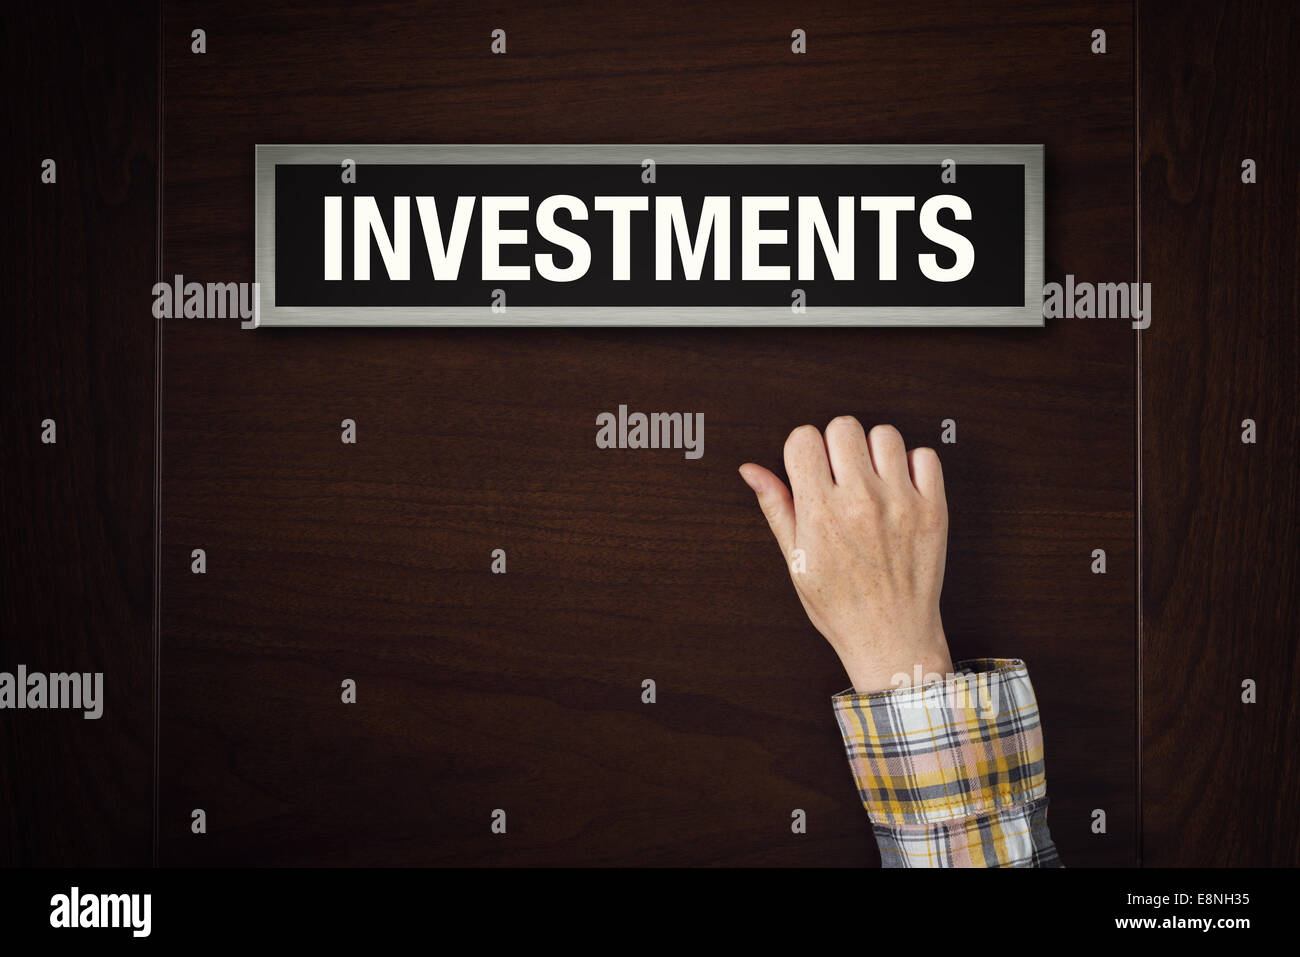 Female hand is knocking on Investments door, conceptual image. - Stock Image